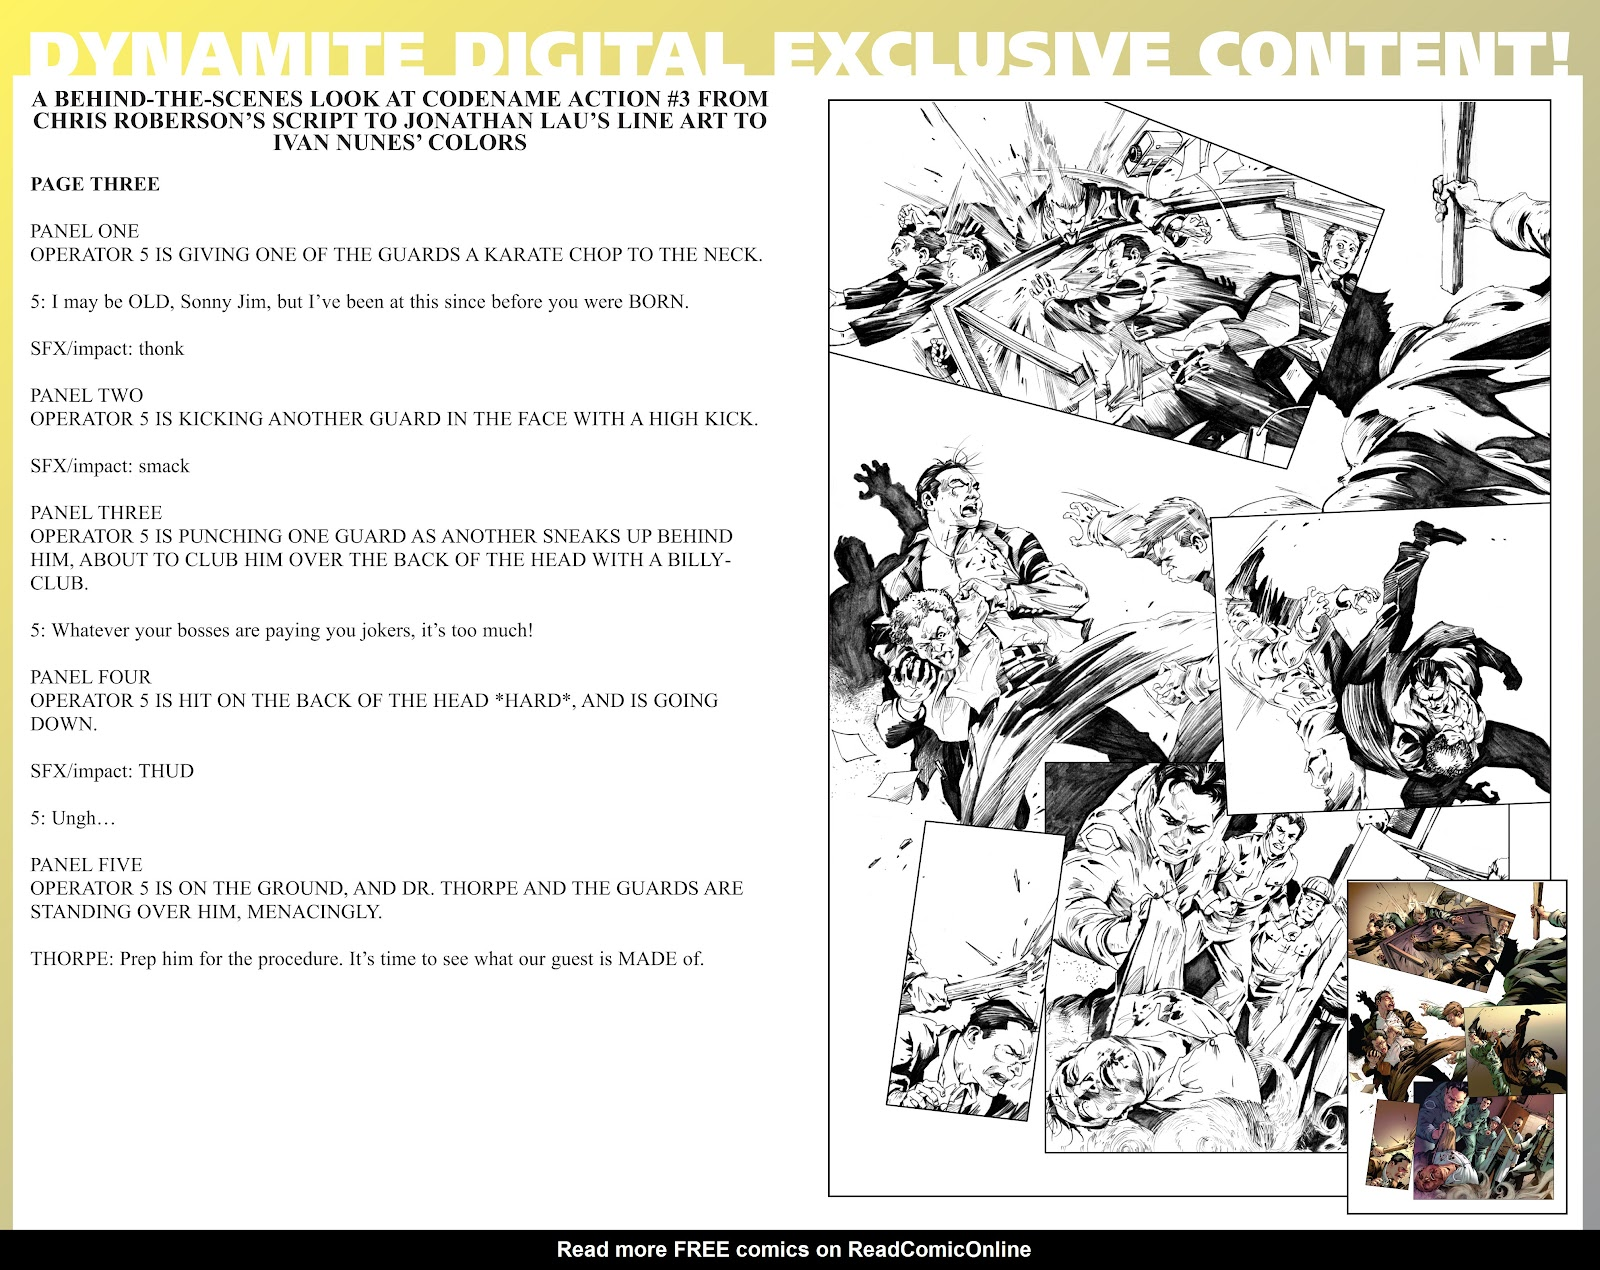 Read online Codename: Action comic -  Issue #3 - 37